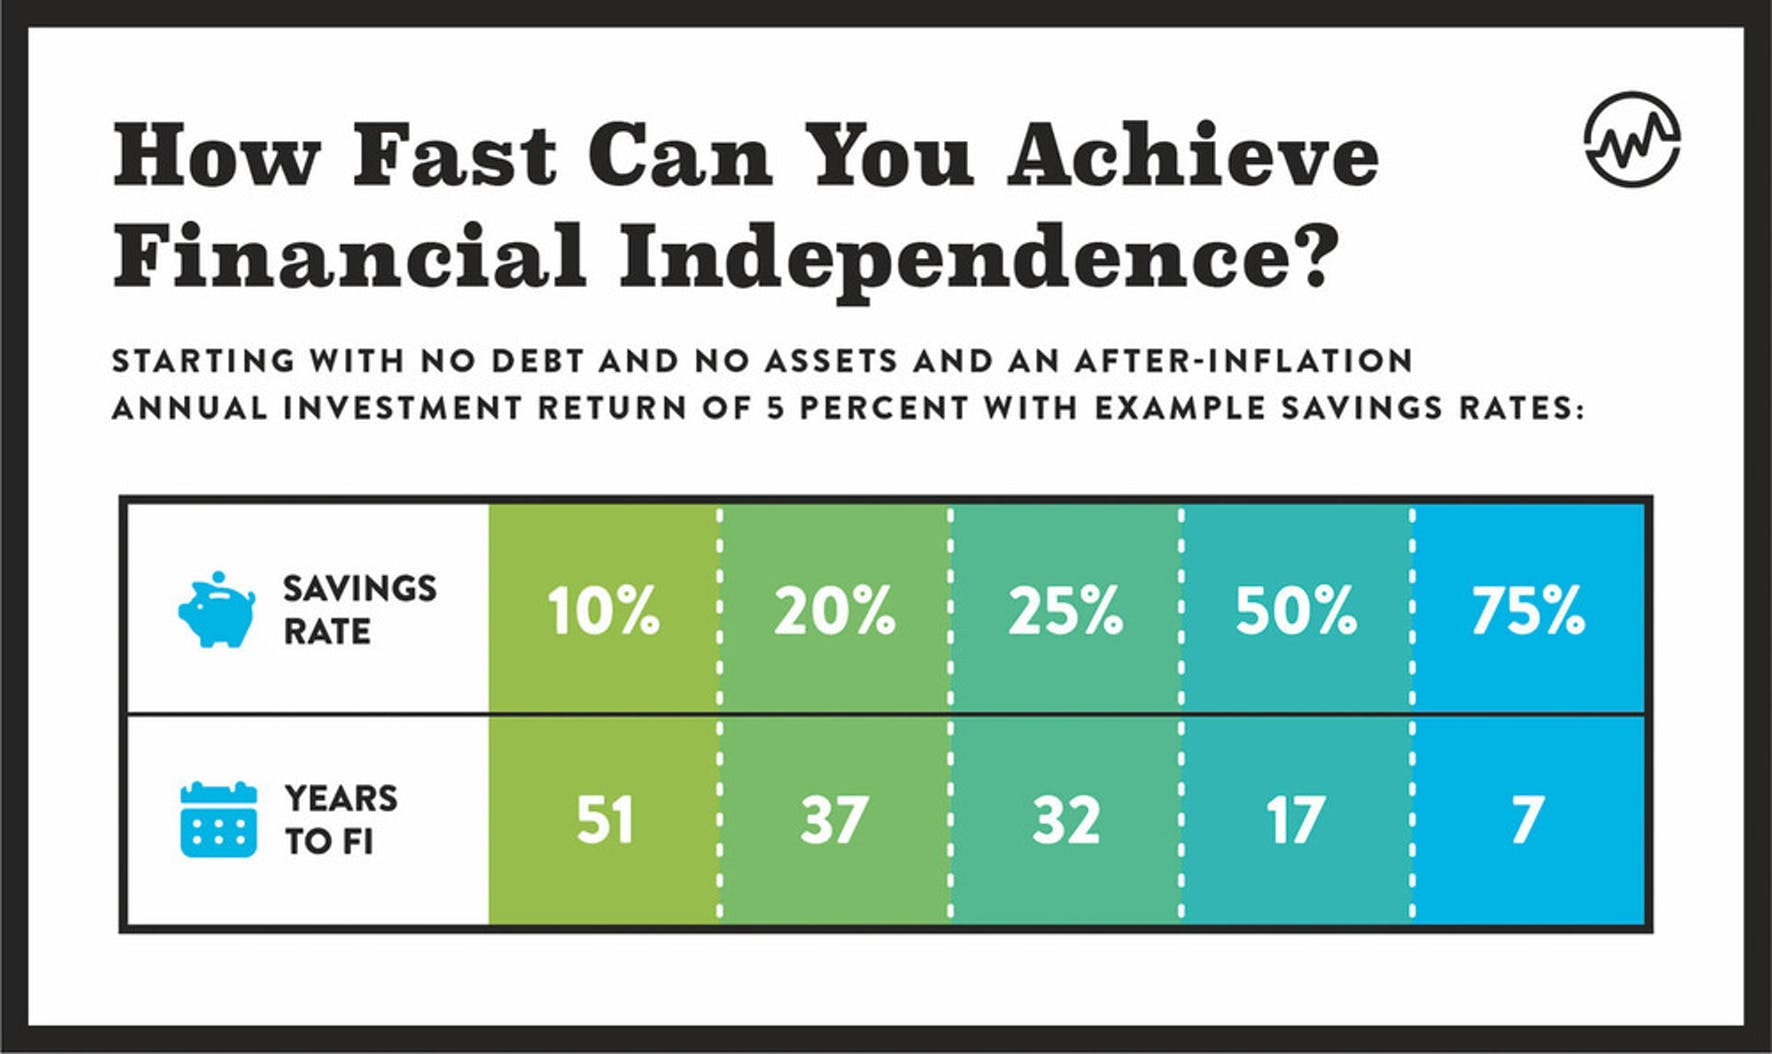 How fast can you achieve financial independence?